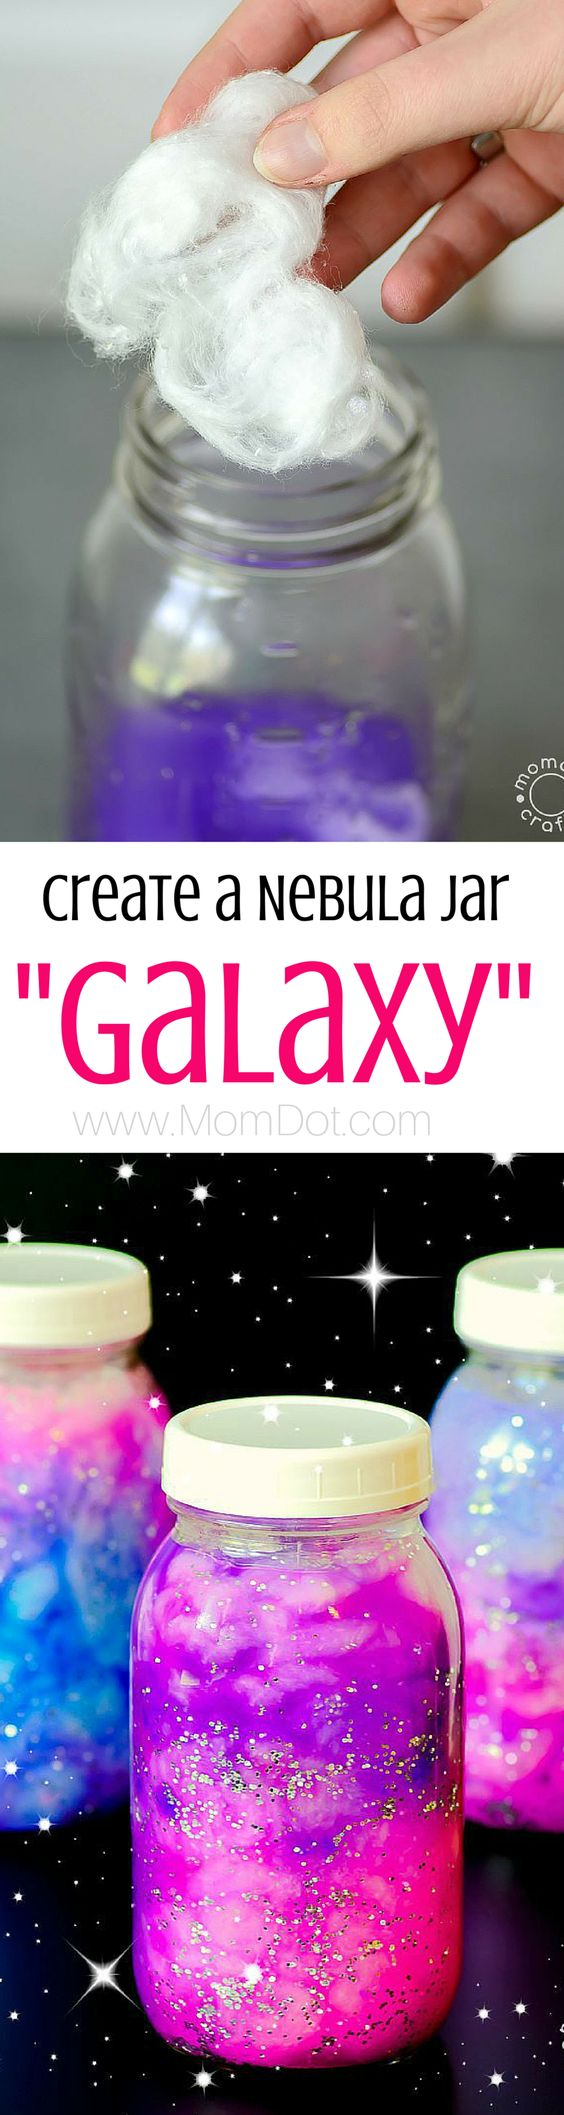 DIY Nebula Jar